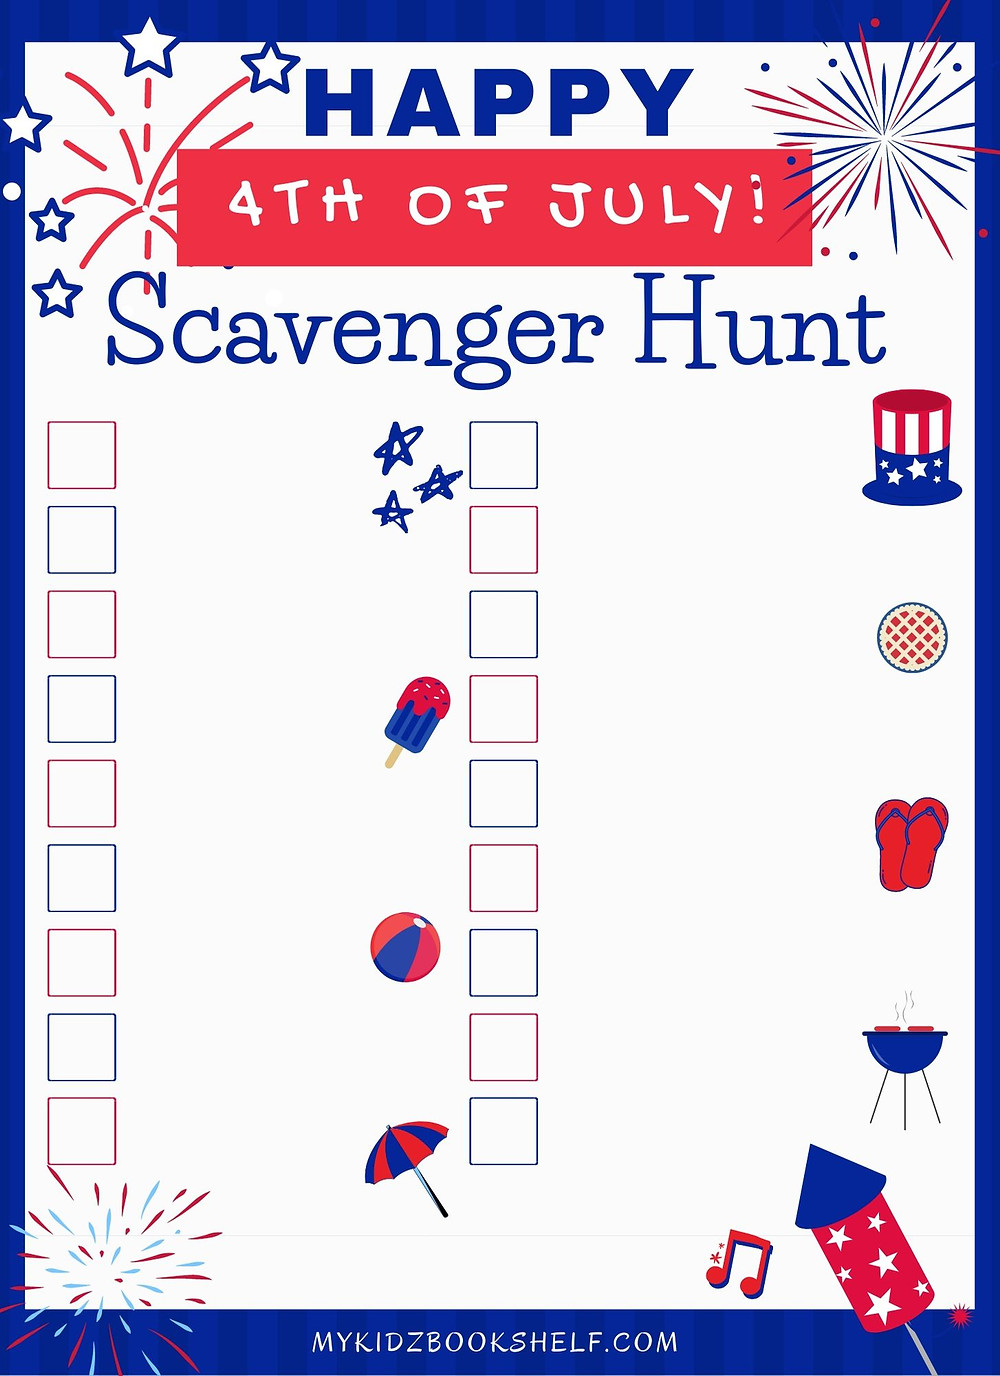 Happy 4th of July Scavenger Hunt Free Printable for kids fun summer